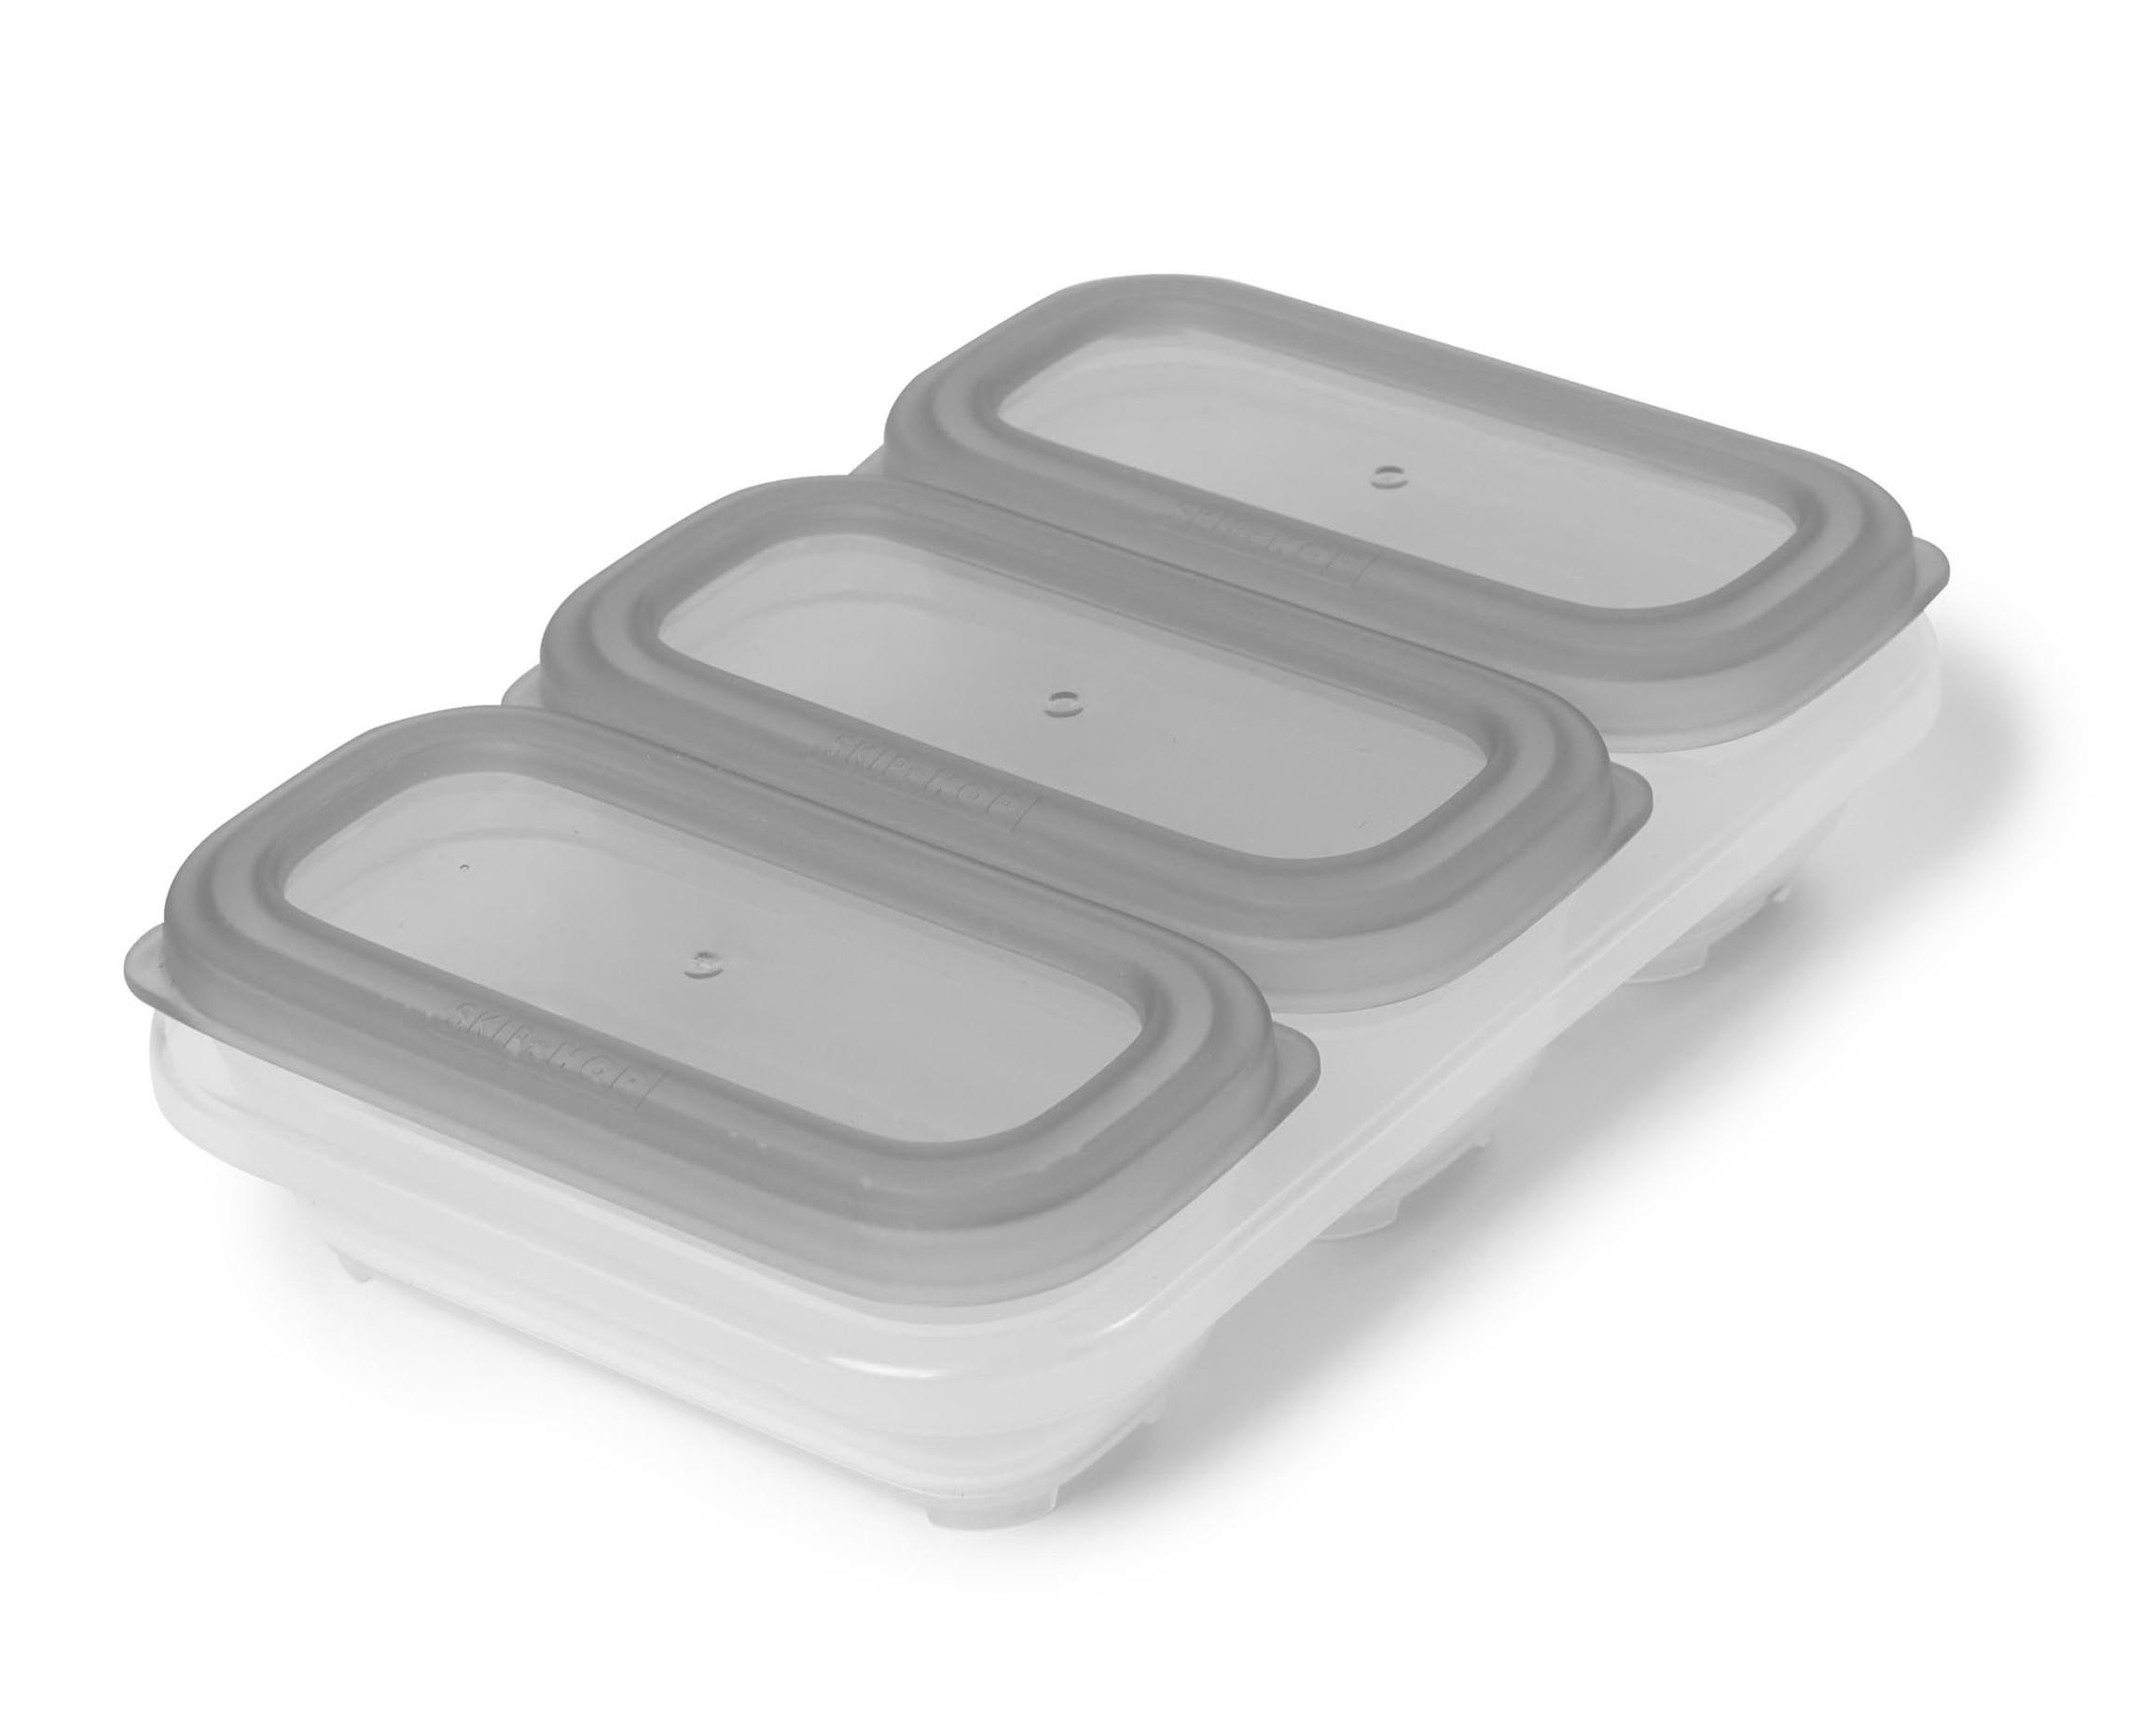 Skip Hop - Easy-Store 4 oz containers (120 ml)